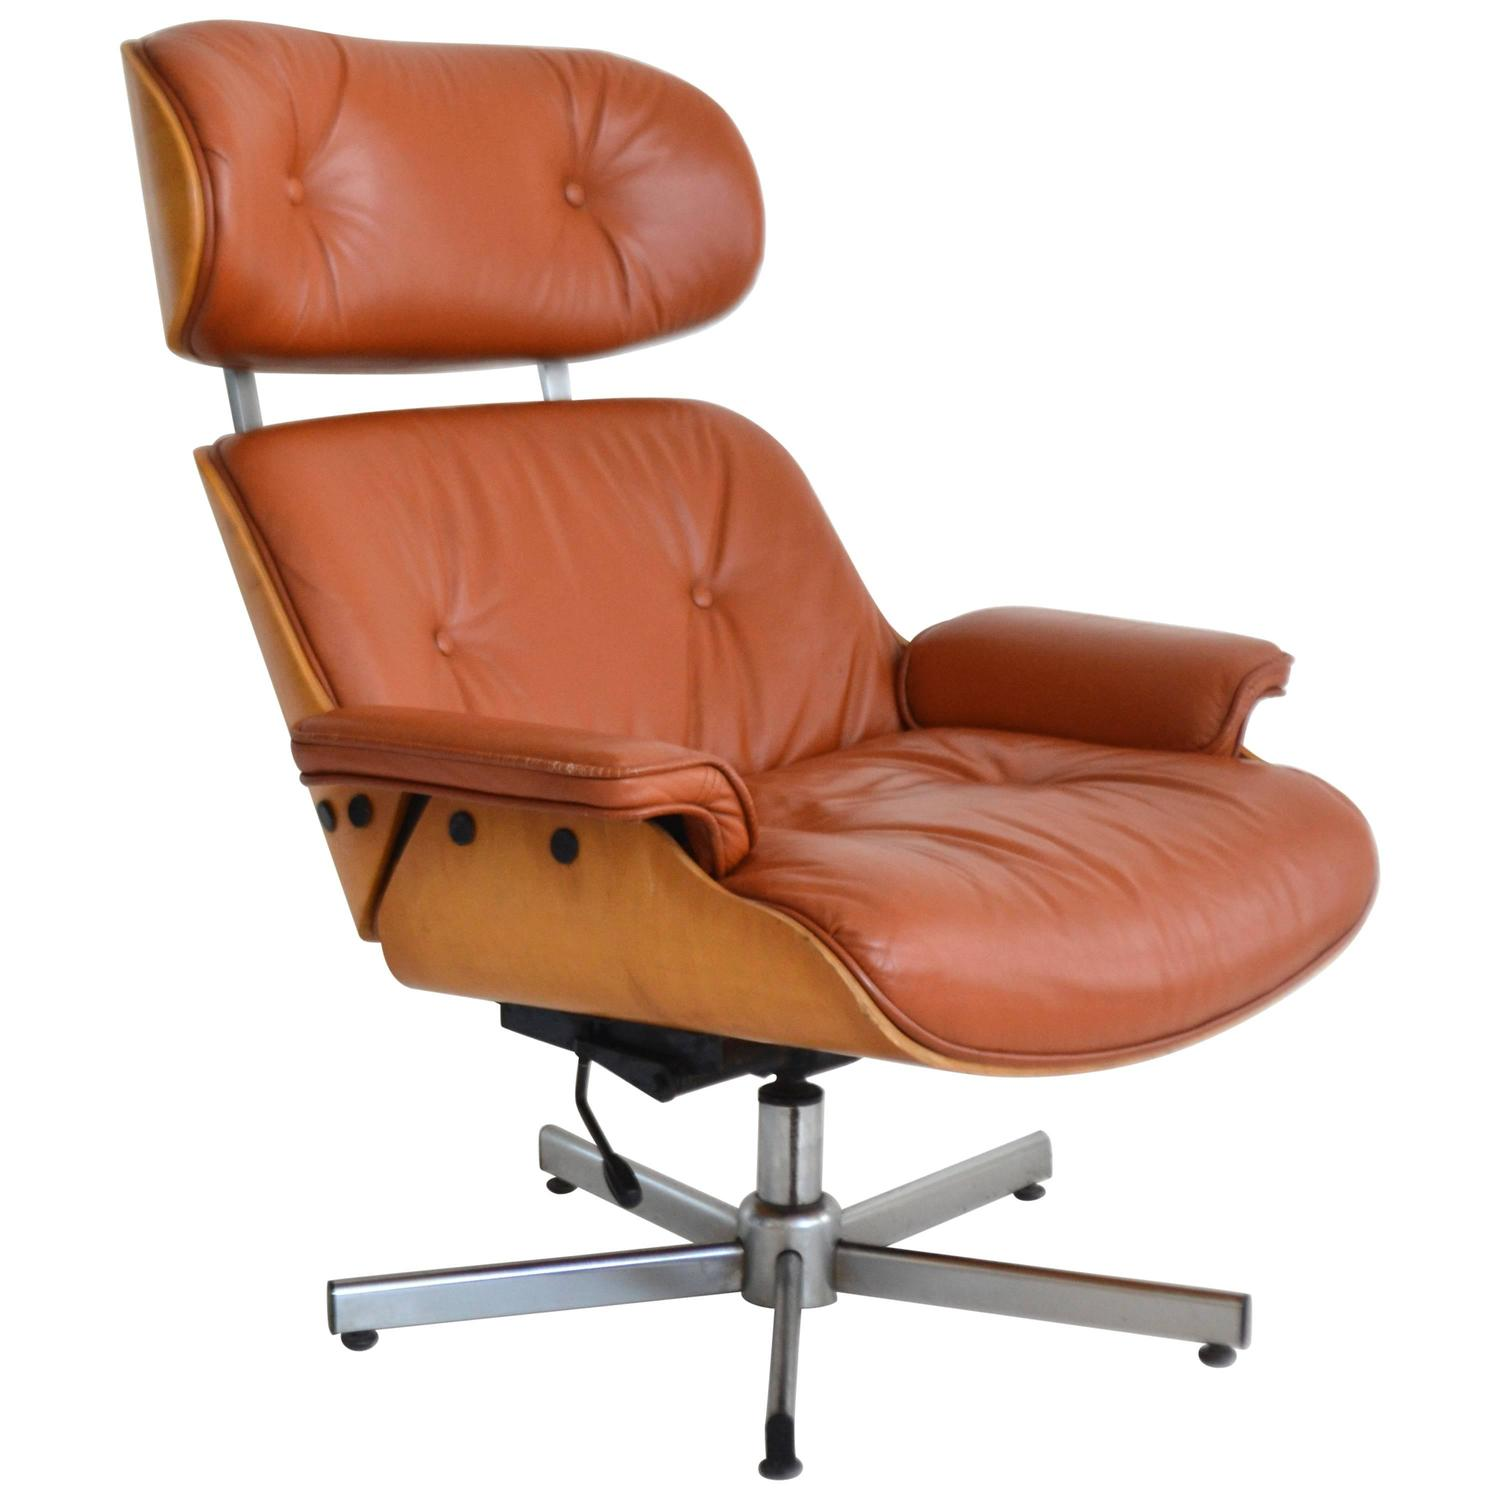 italian mid century leather and oak lounge chair for sale at 1stdibs